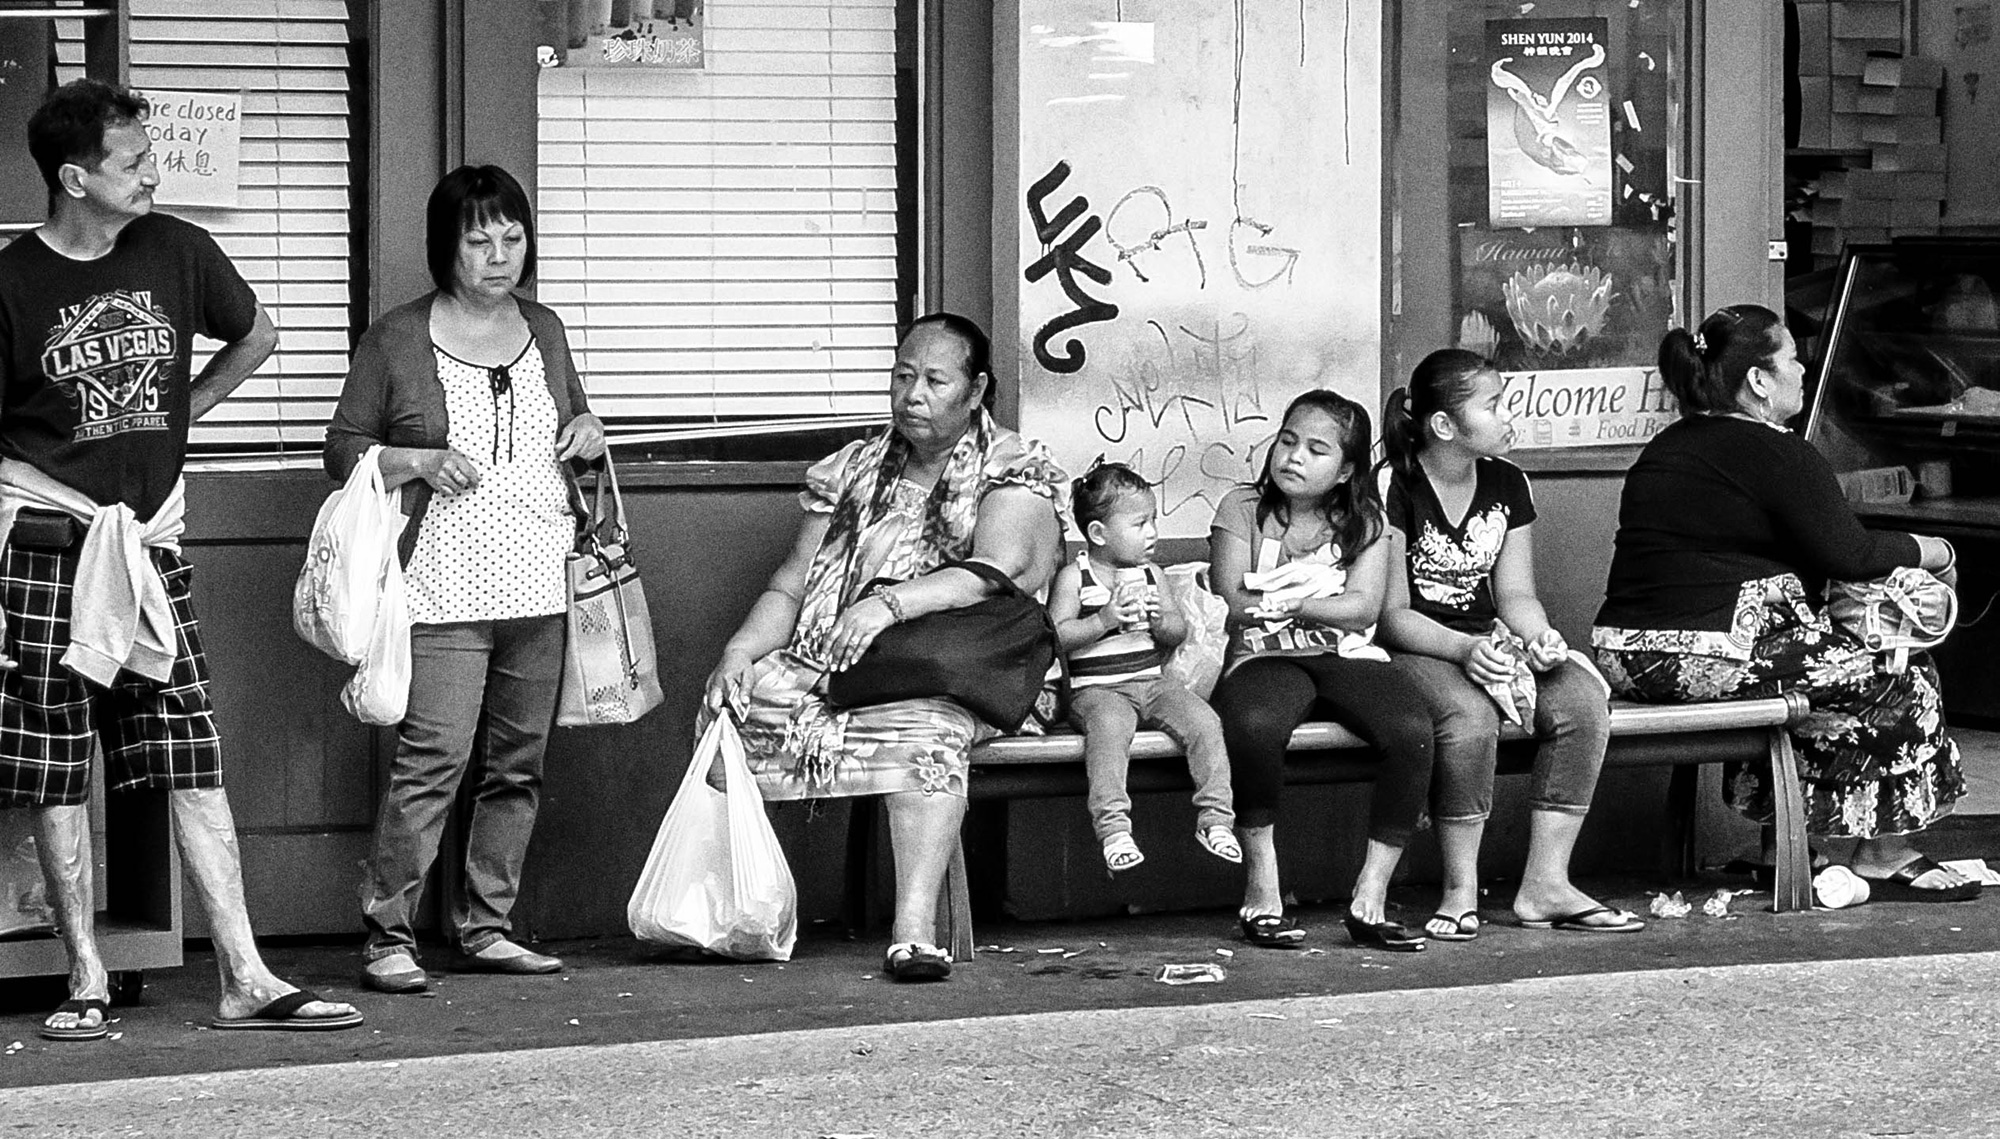 A bench of people of all ages sit carrying shopping bags at what appears to be a bus stop.